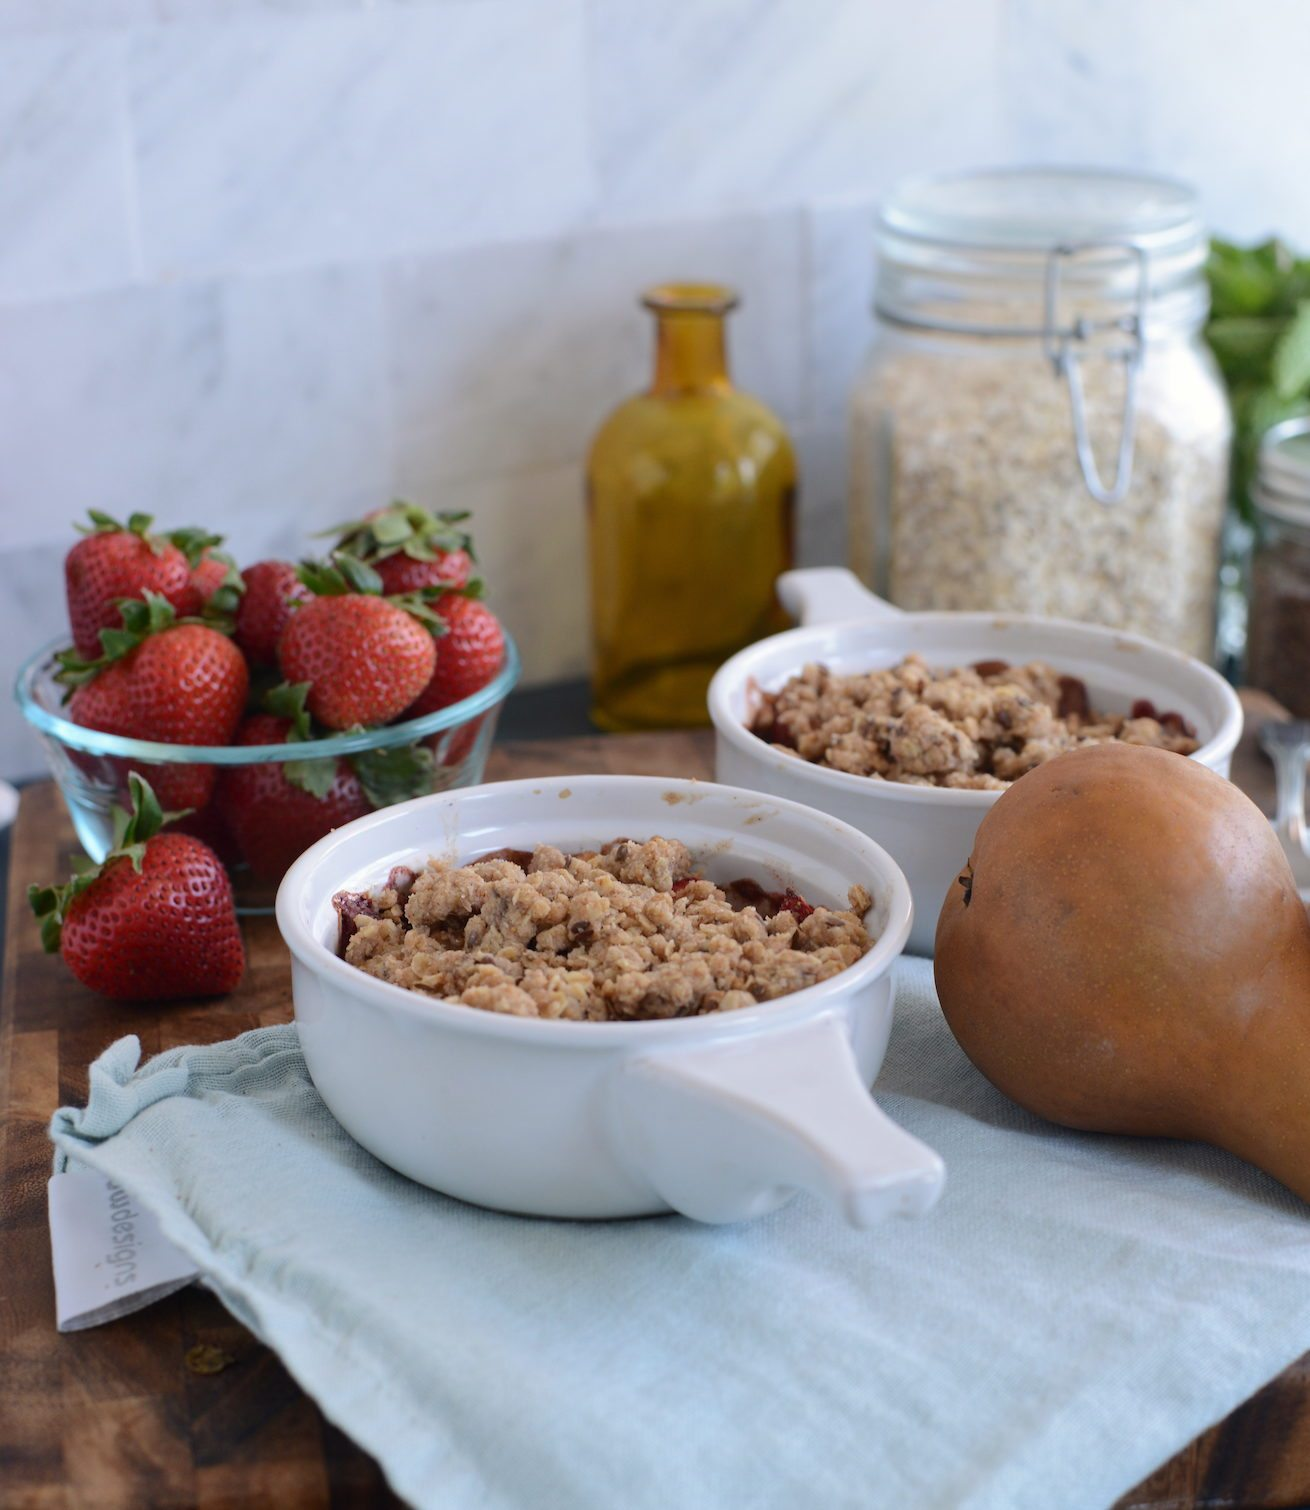 Pear Strawberry GraGrahamCrumble